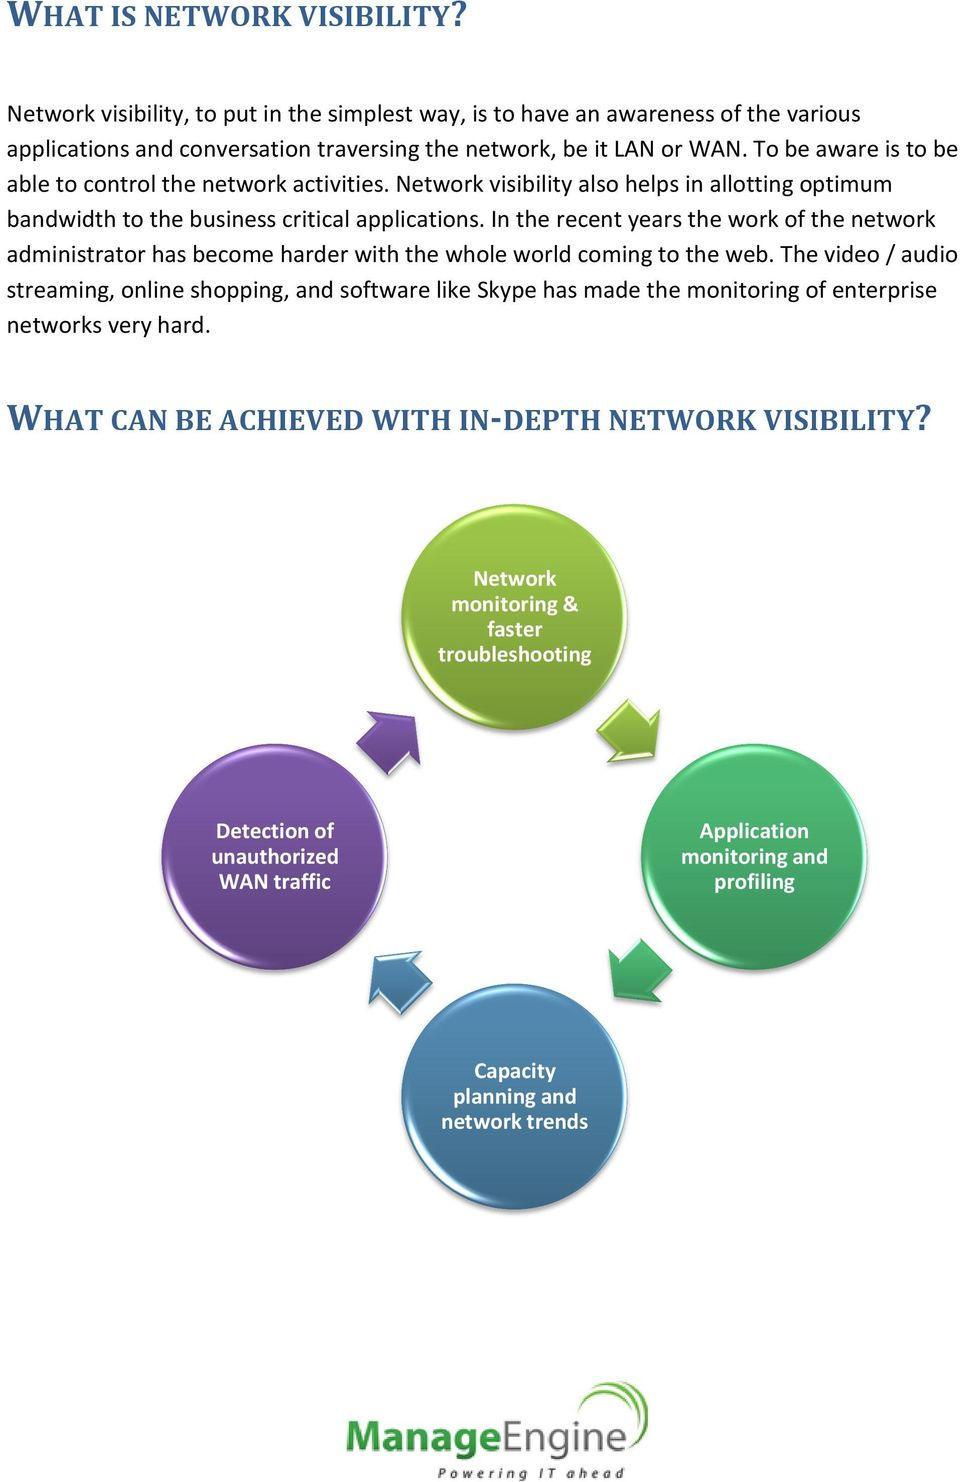 In the recent years the work of the network administrator has become harder with the whole world coming to the web.